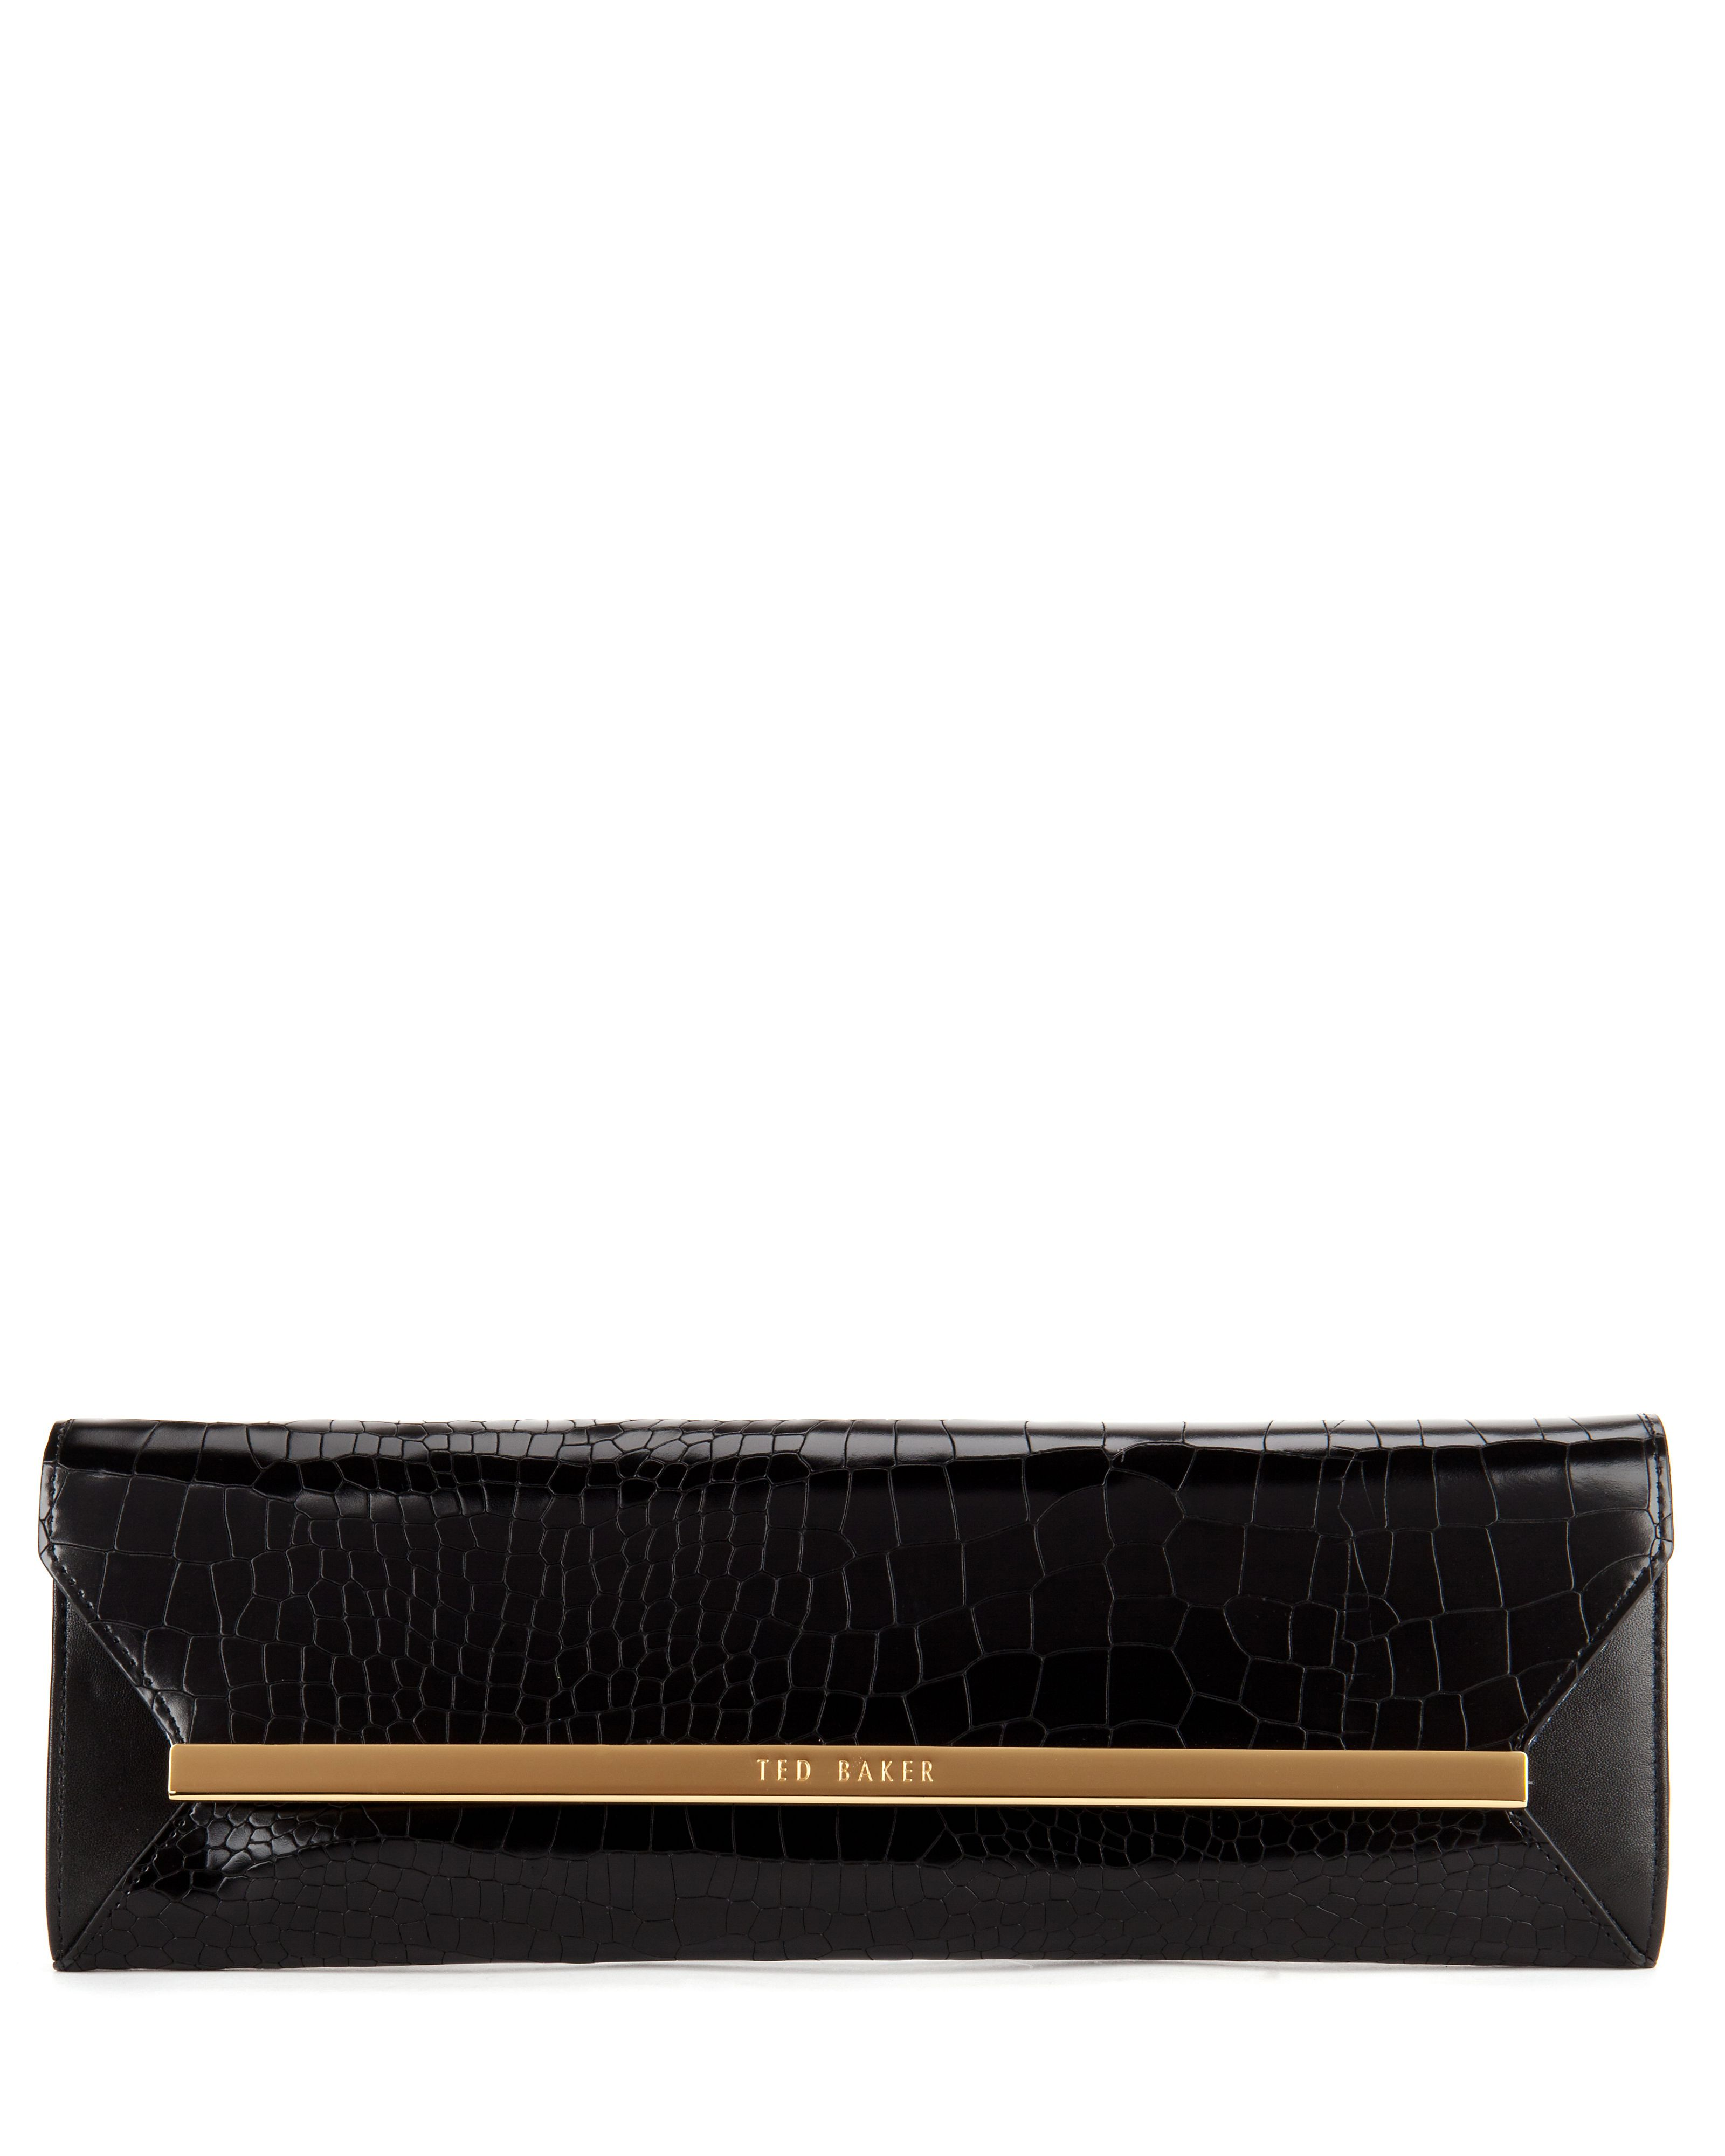 Allise leather metal bar clutch